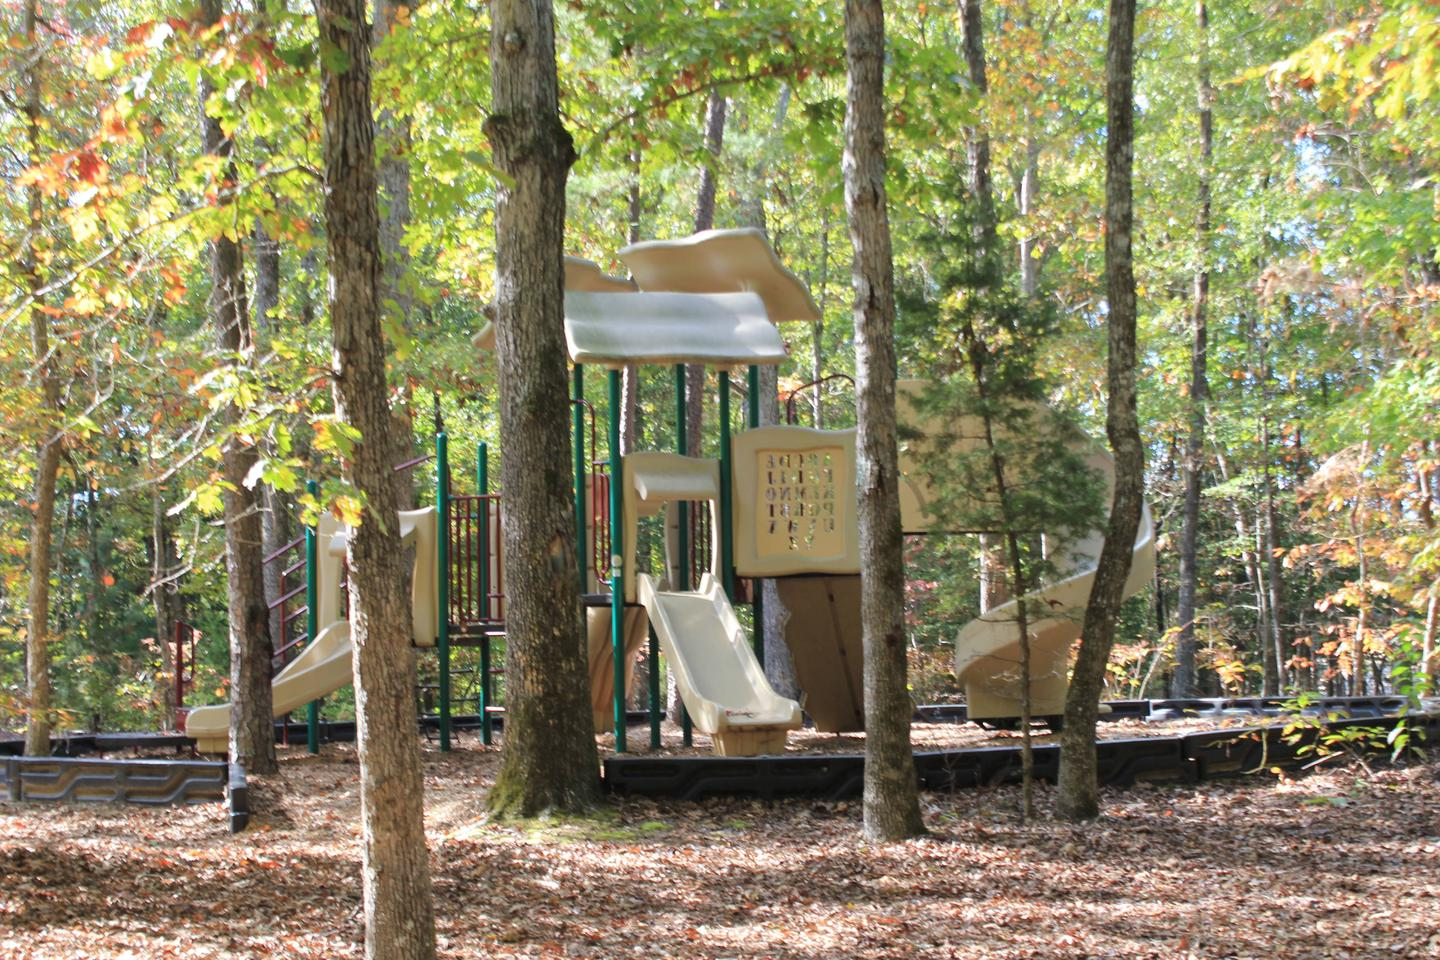 Area D PlaygroundWelcome to North Bend Park! This is the playground located in Area D in North Bend Park.